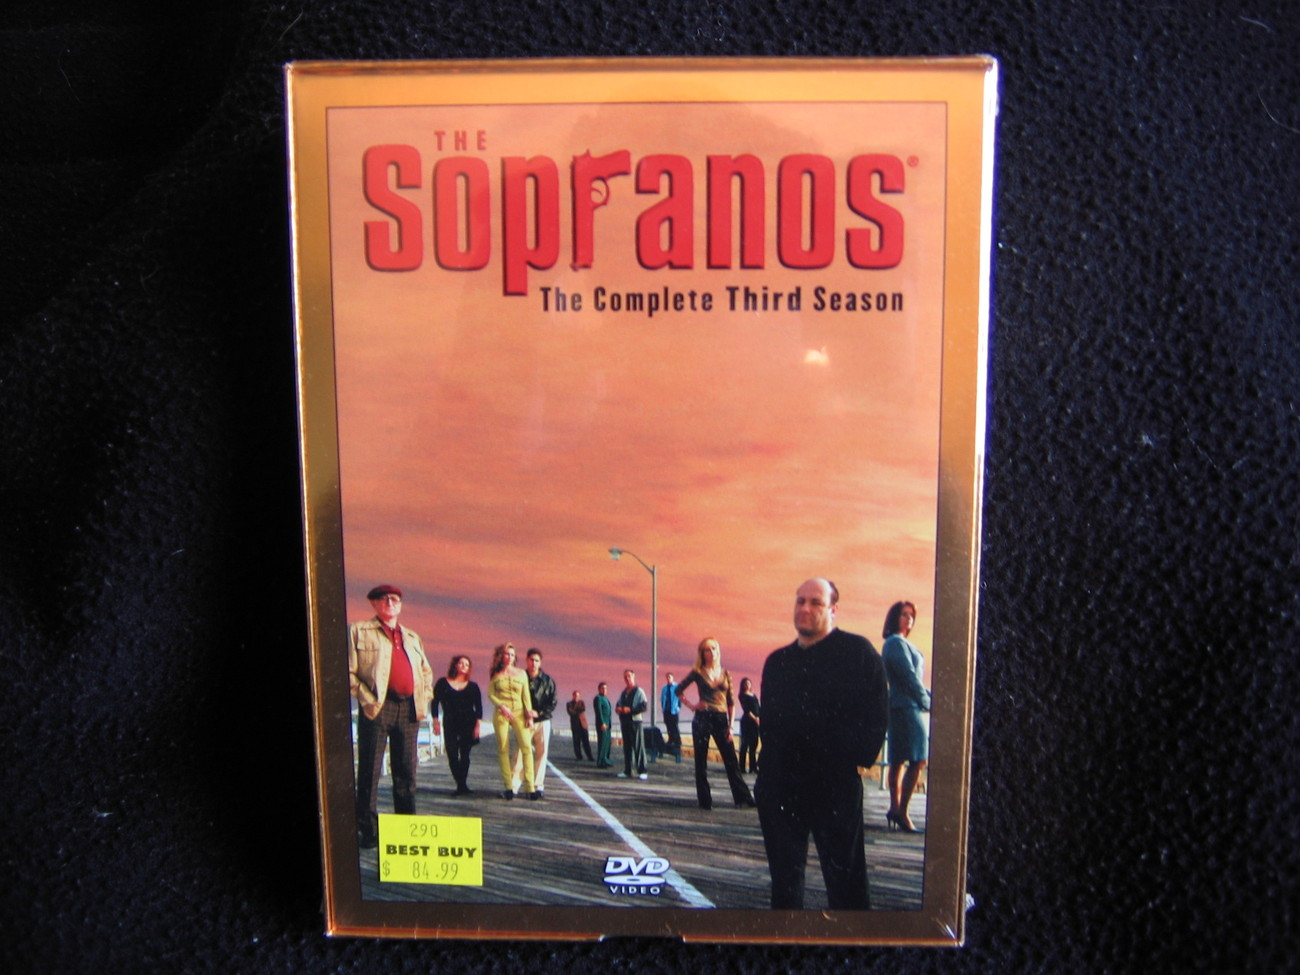 The Sopranos The Complete Third Season DVD